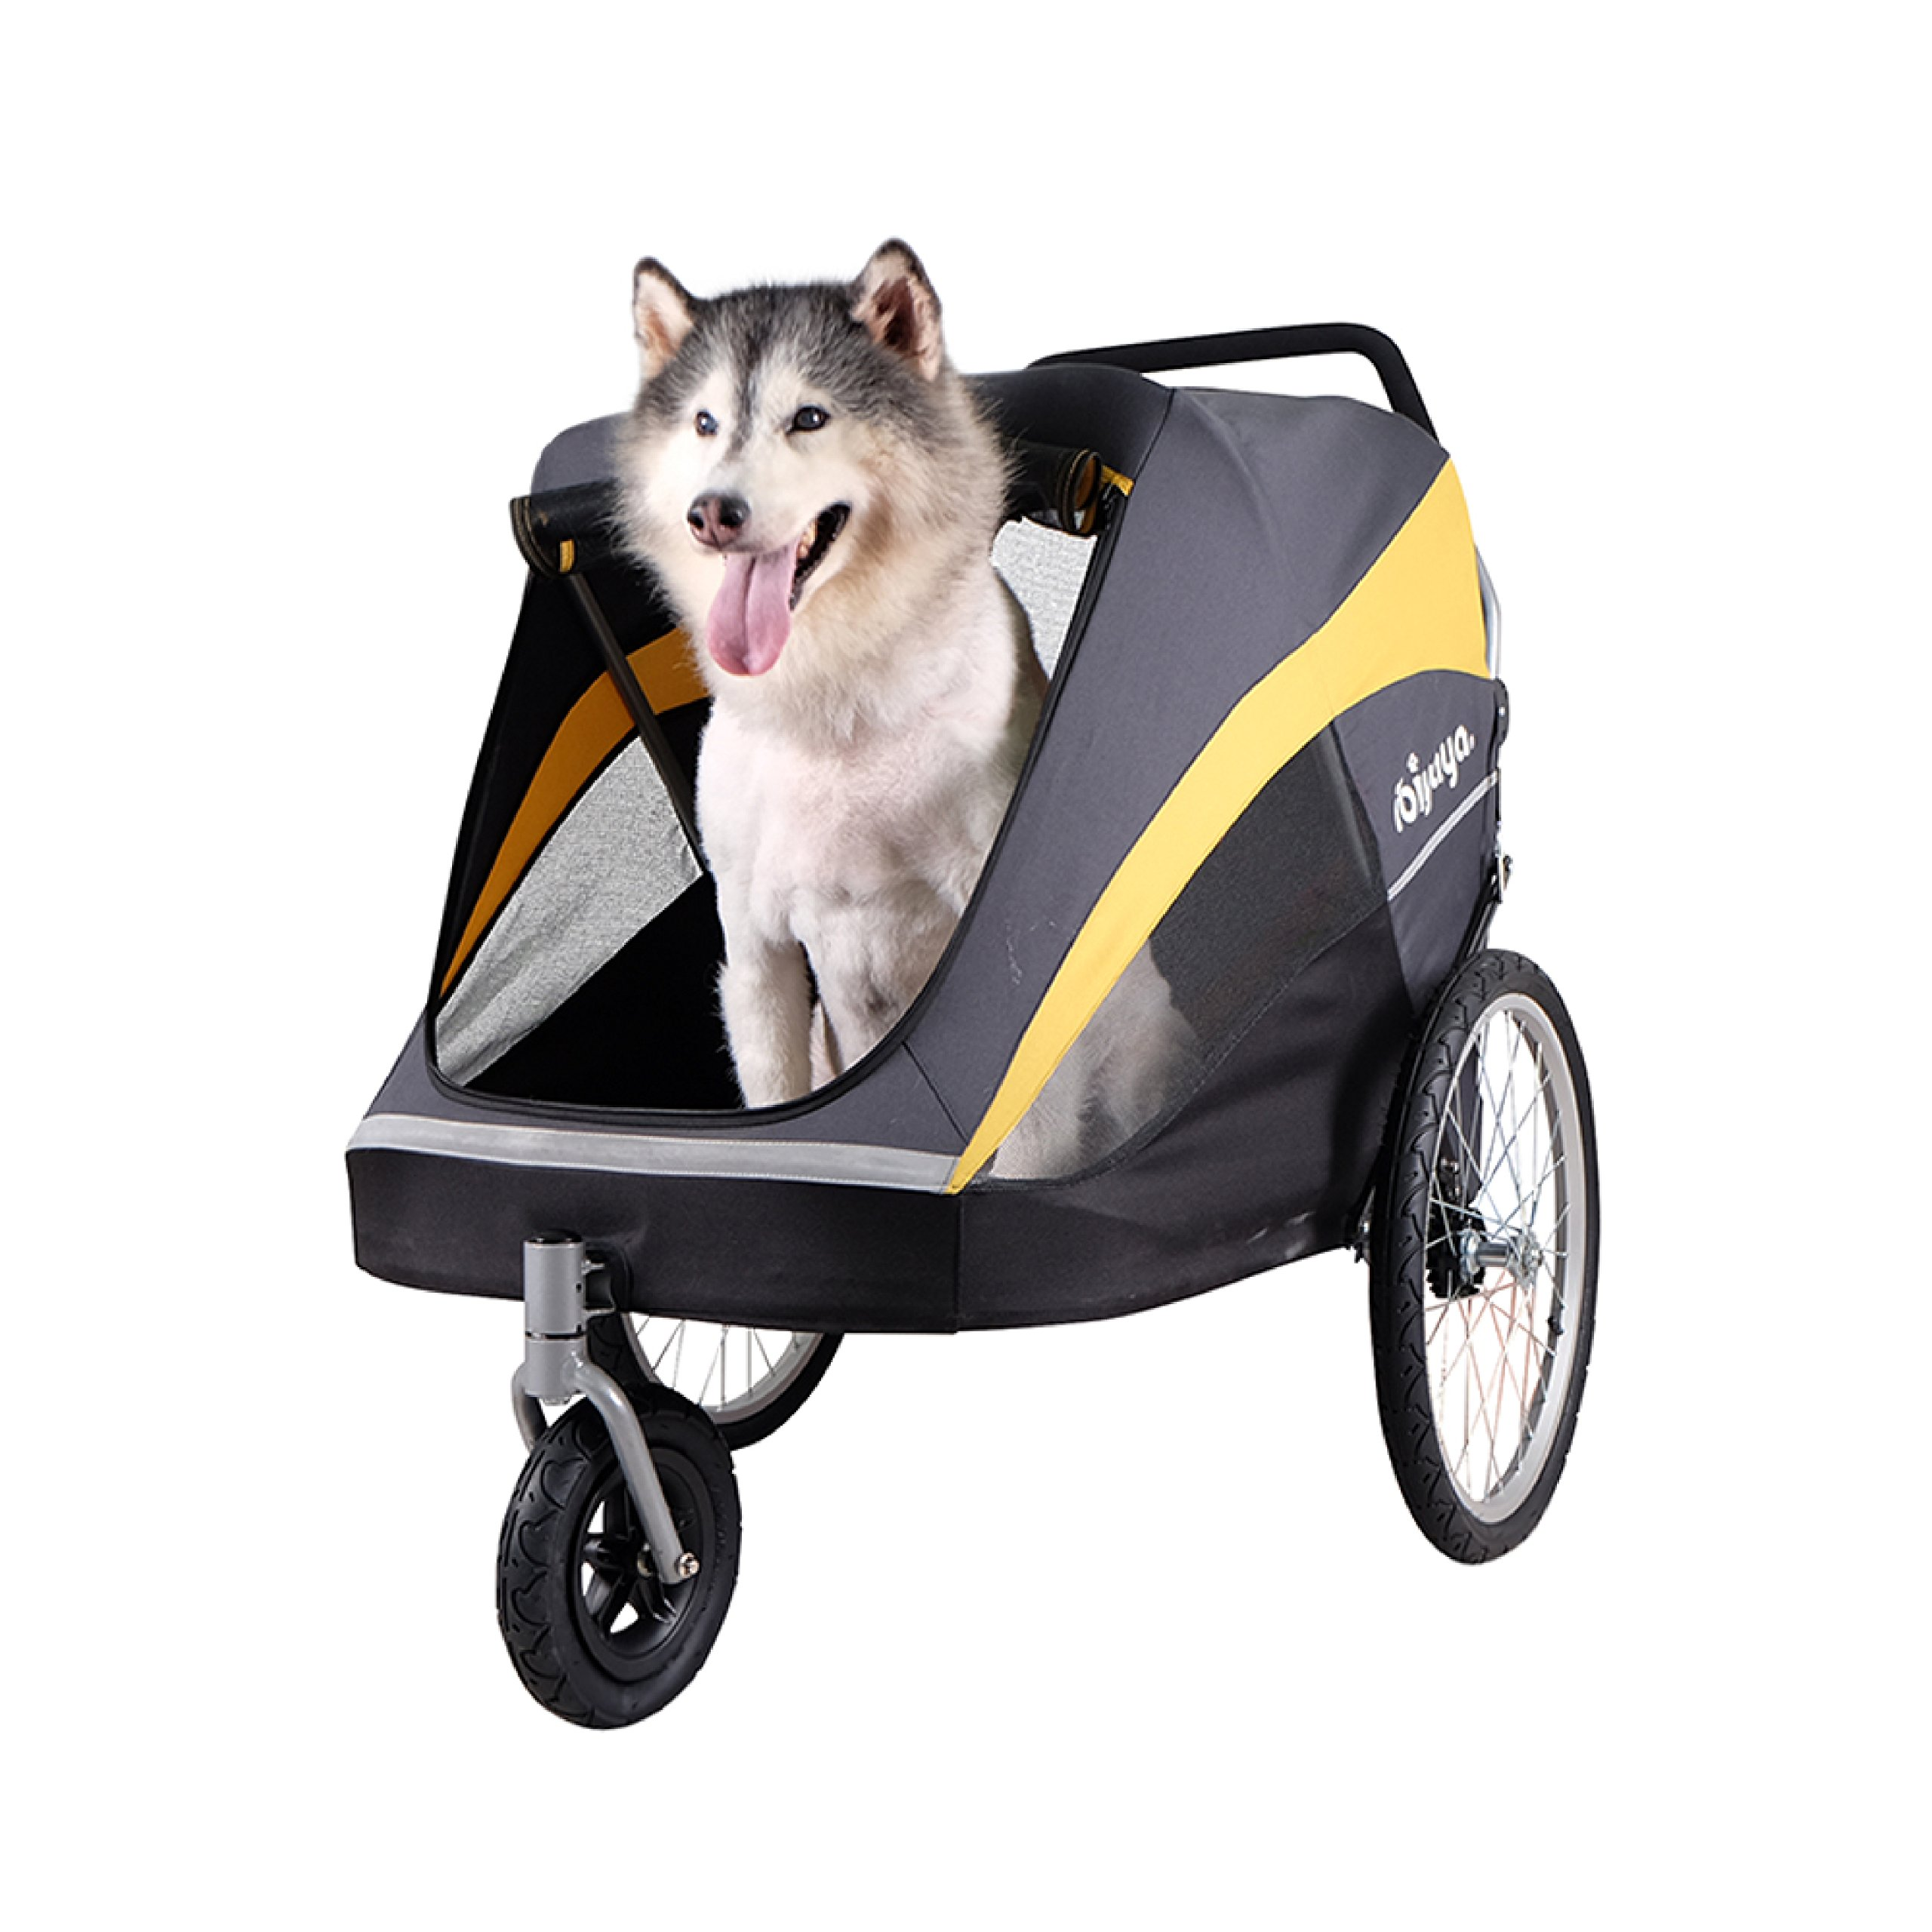 Large Pet Stroller for one Large or Multiple Medium Dogs with air Filled tire Suspension and Aluminum Frames, rain Cover Included by ibiyaya